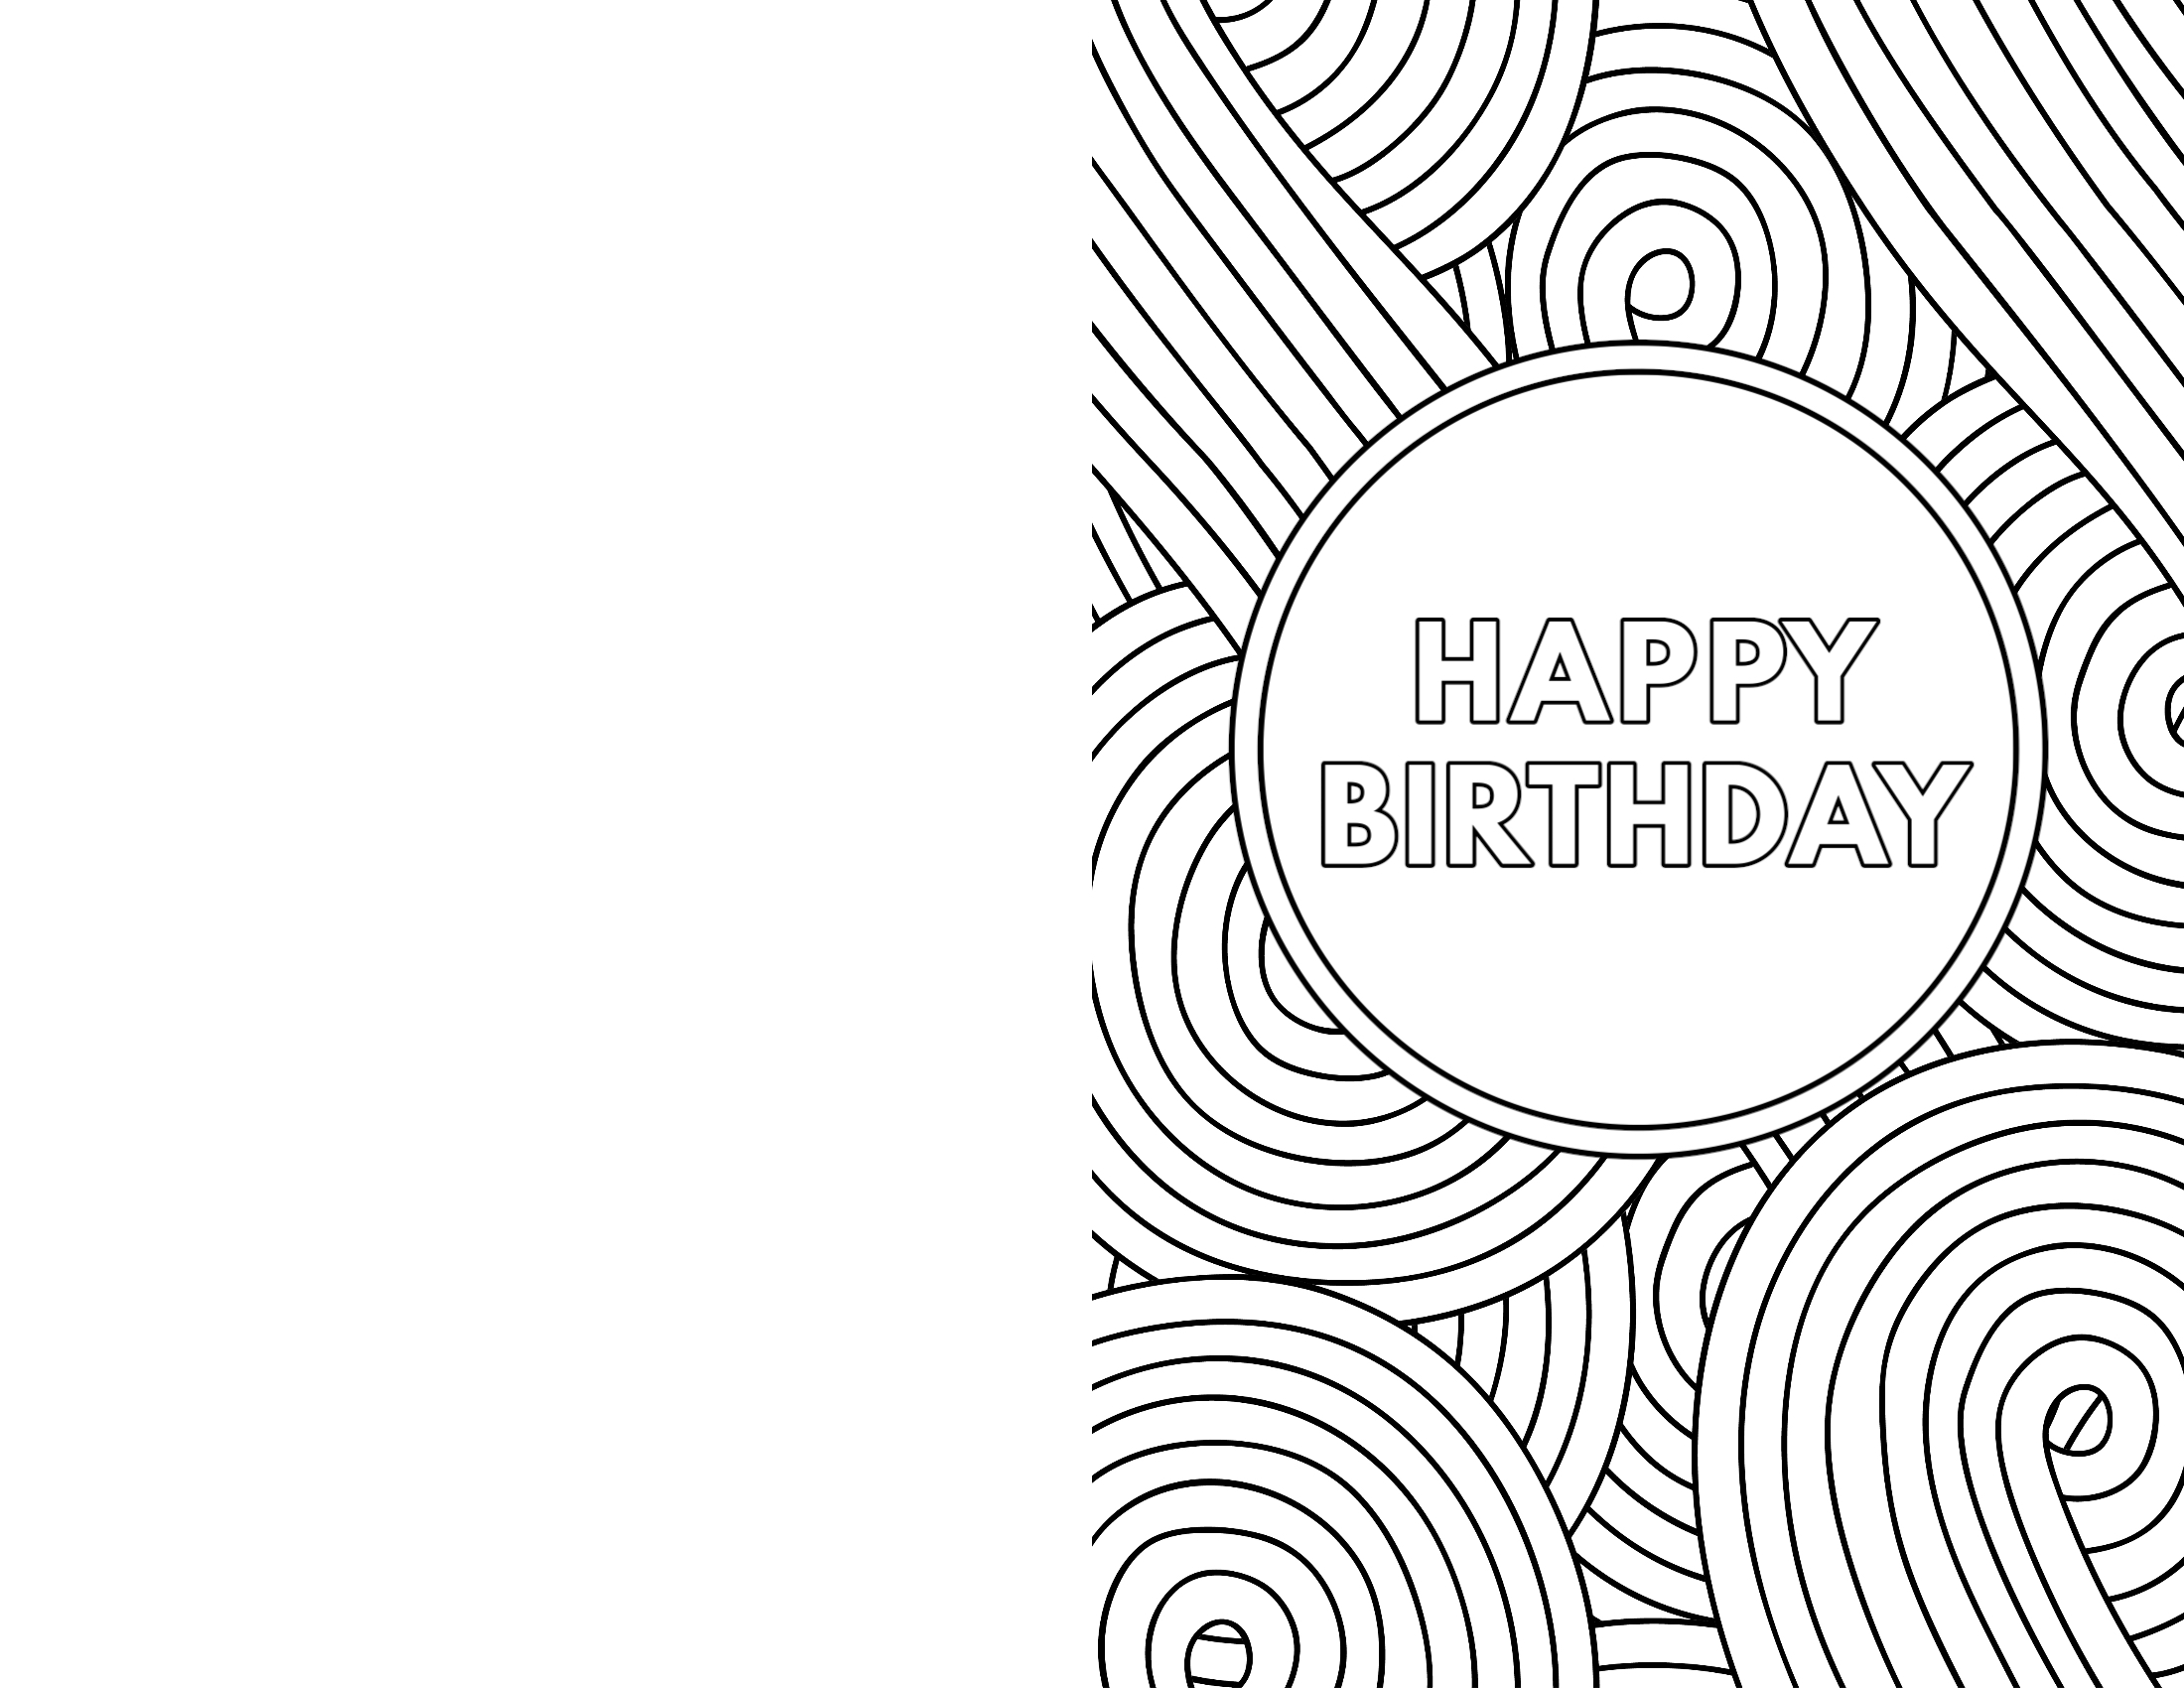 photograph relating to Printable Children's Birthday Cards identify Free of charge Printable Birthday Playing cards - Paper Path Style and design